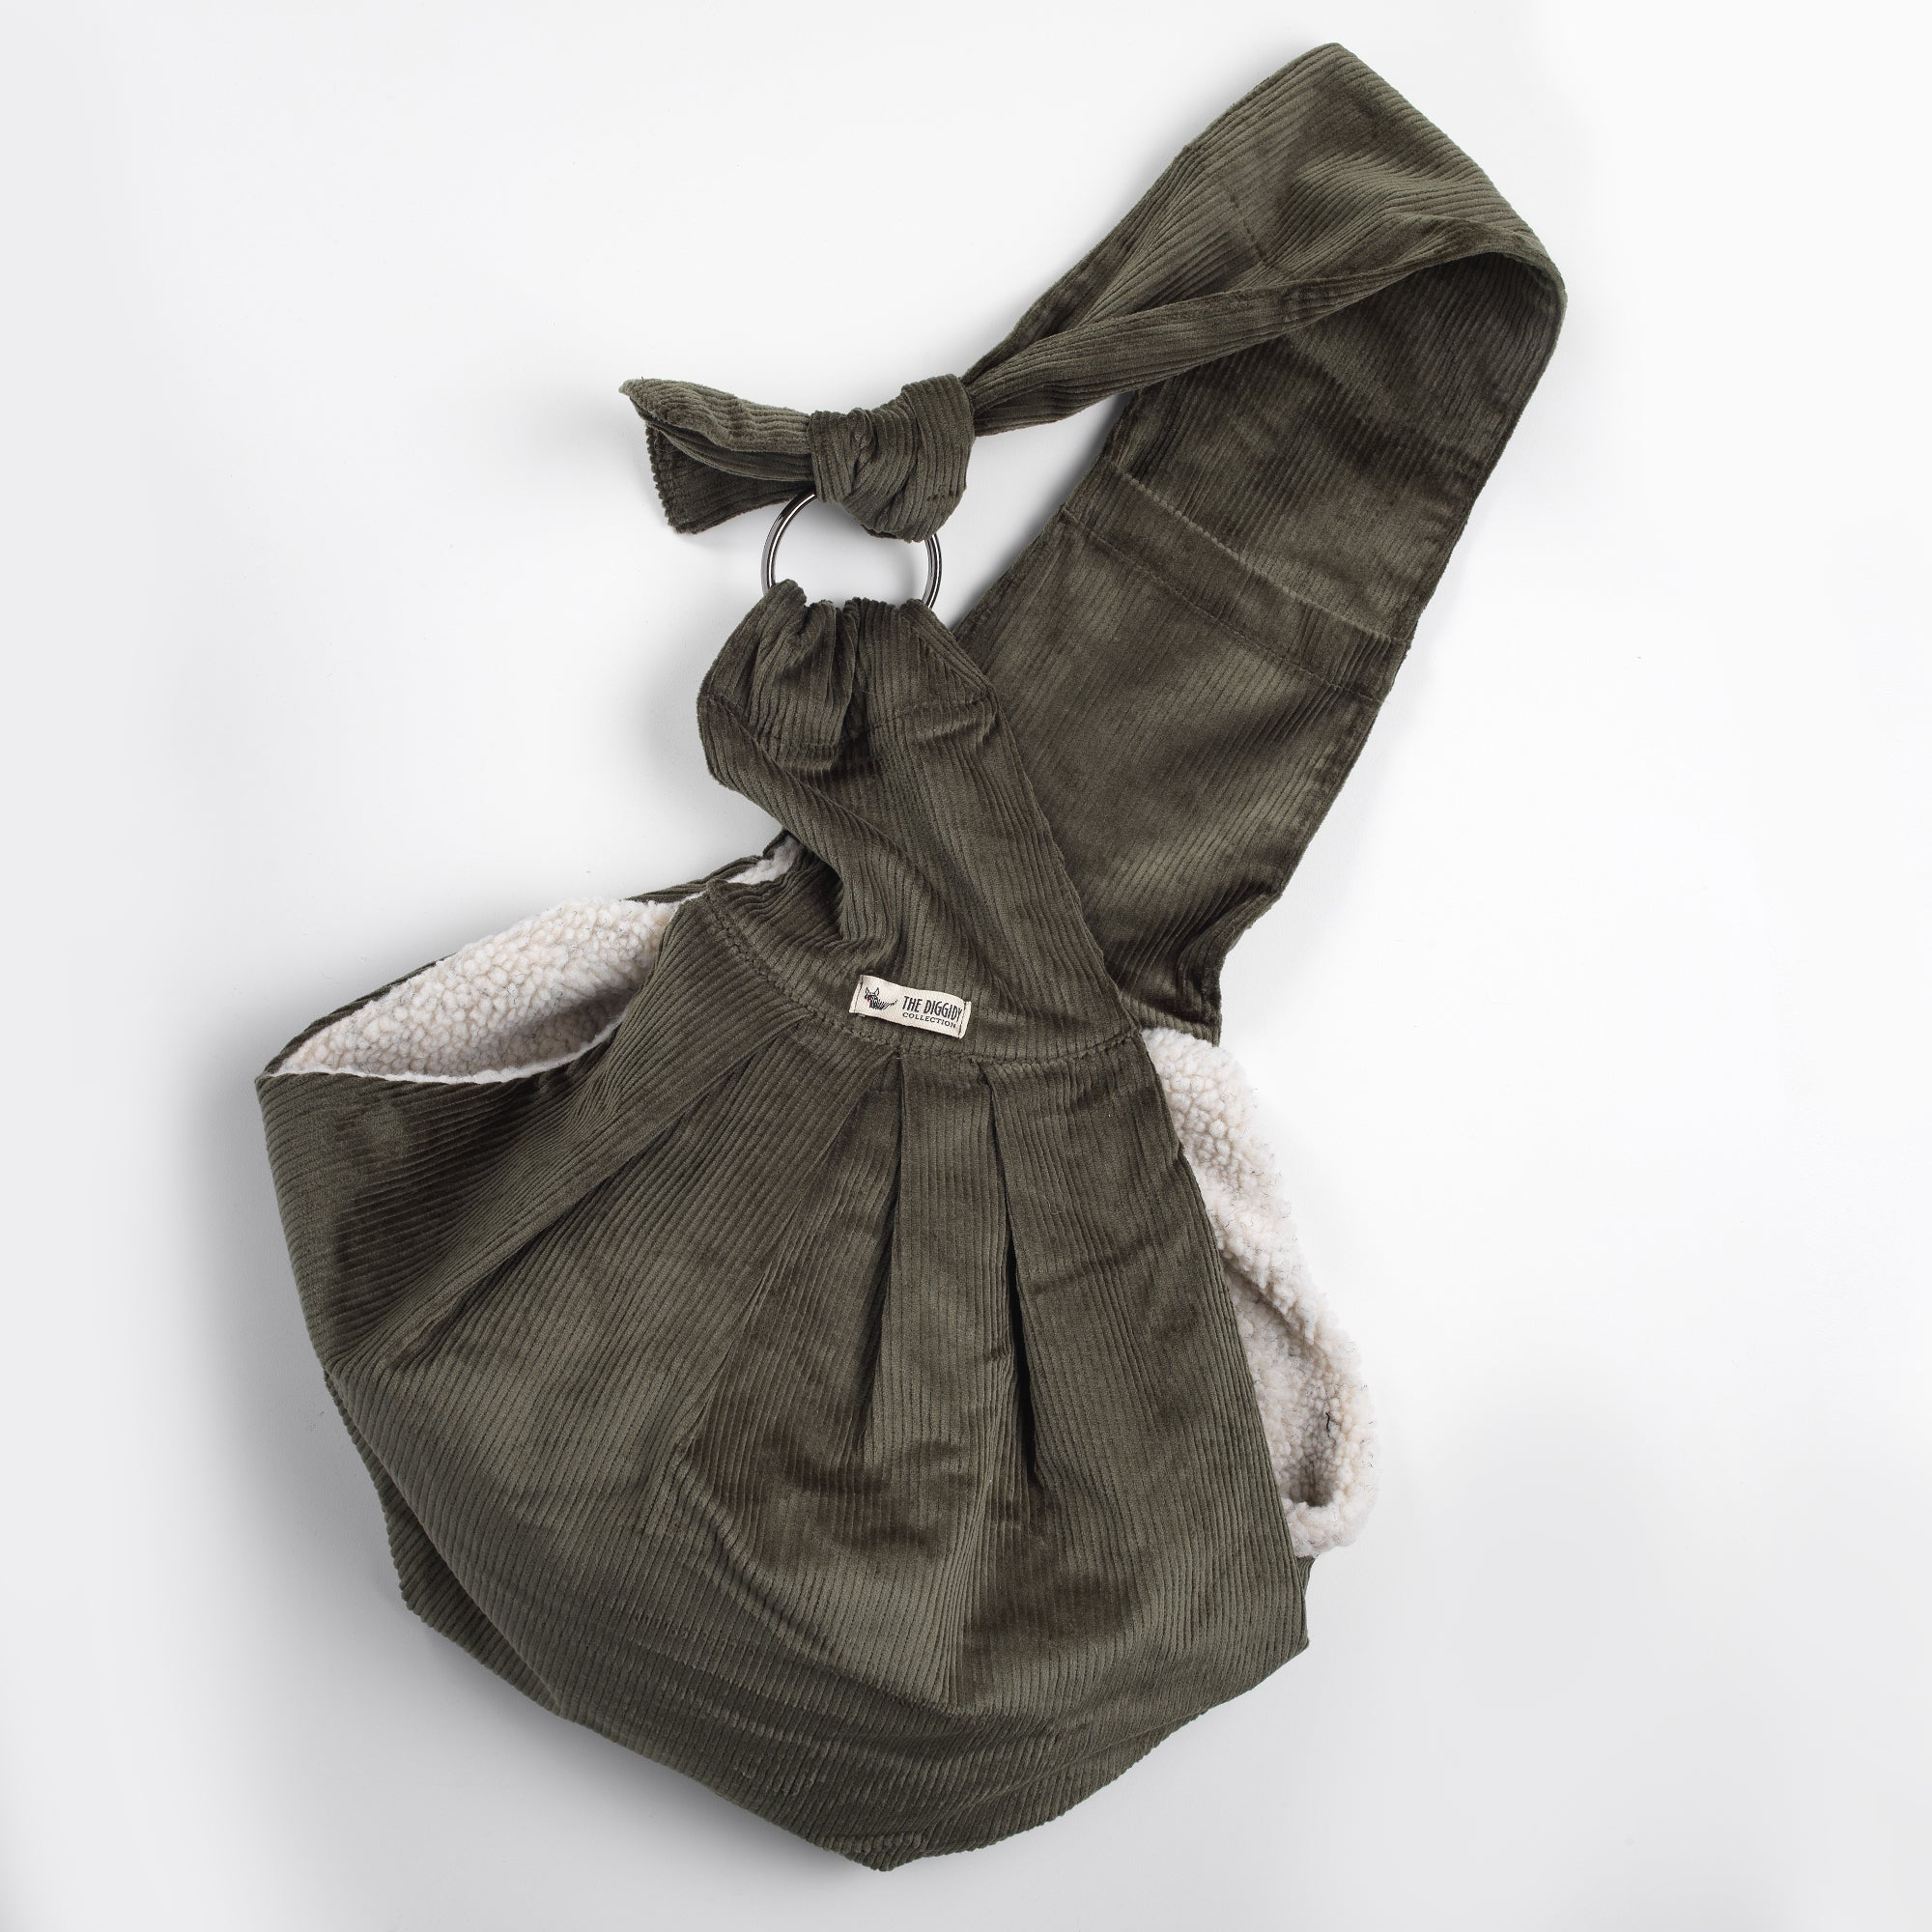 DC Cotton Carrier Olive sling